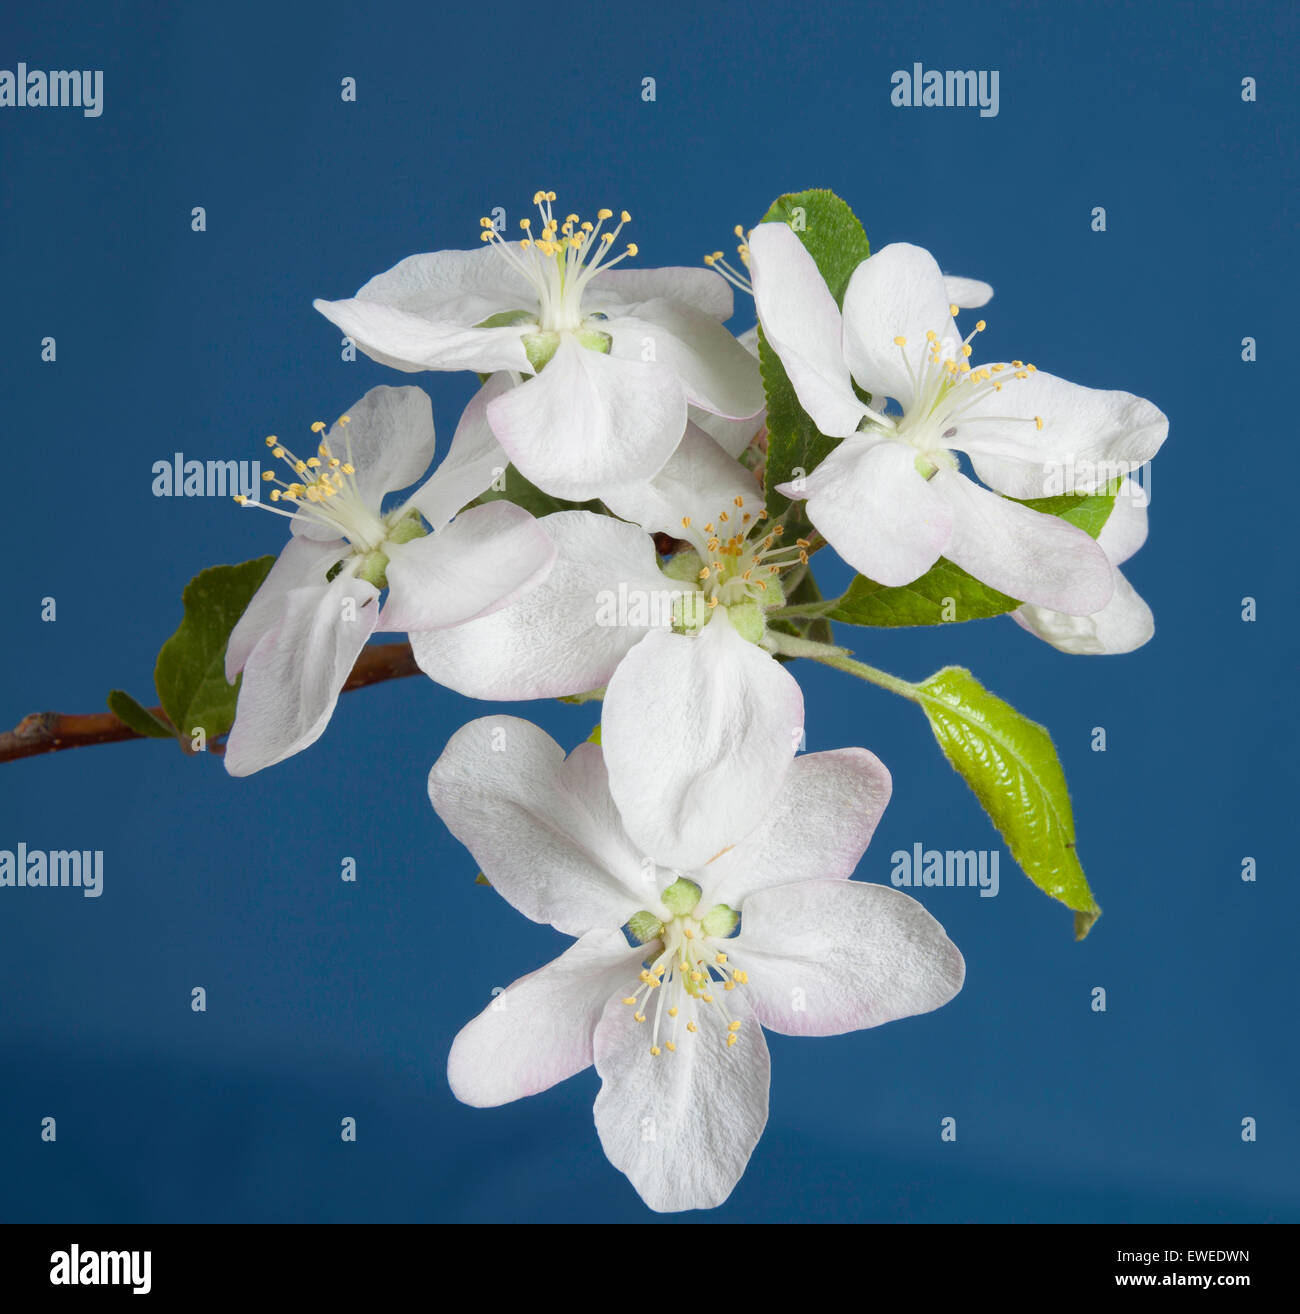 White Plum blossoms on a fruit farm in Ontario' Canada - Stock Image